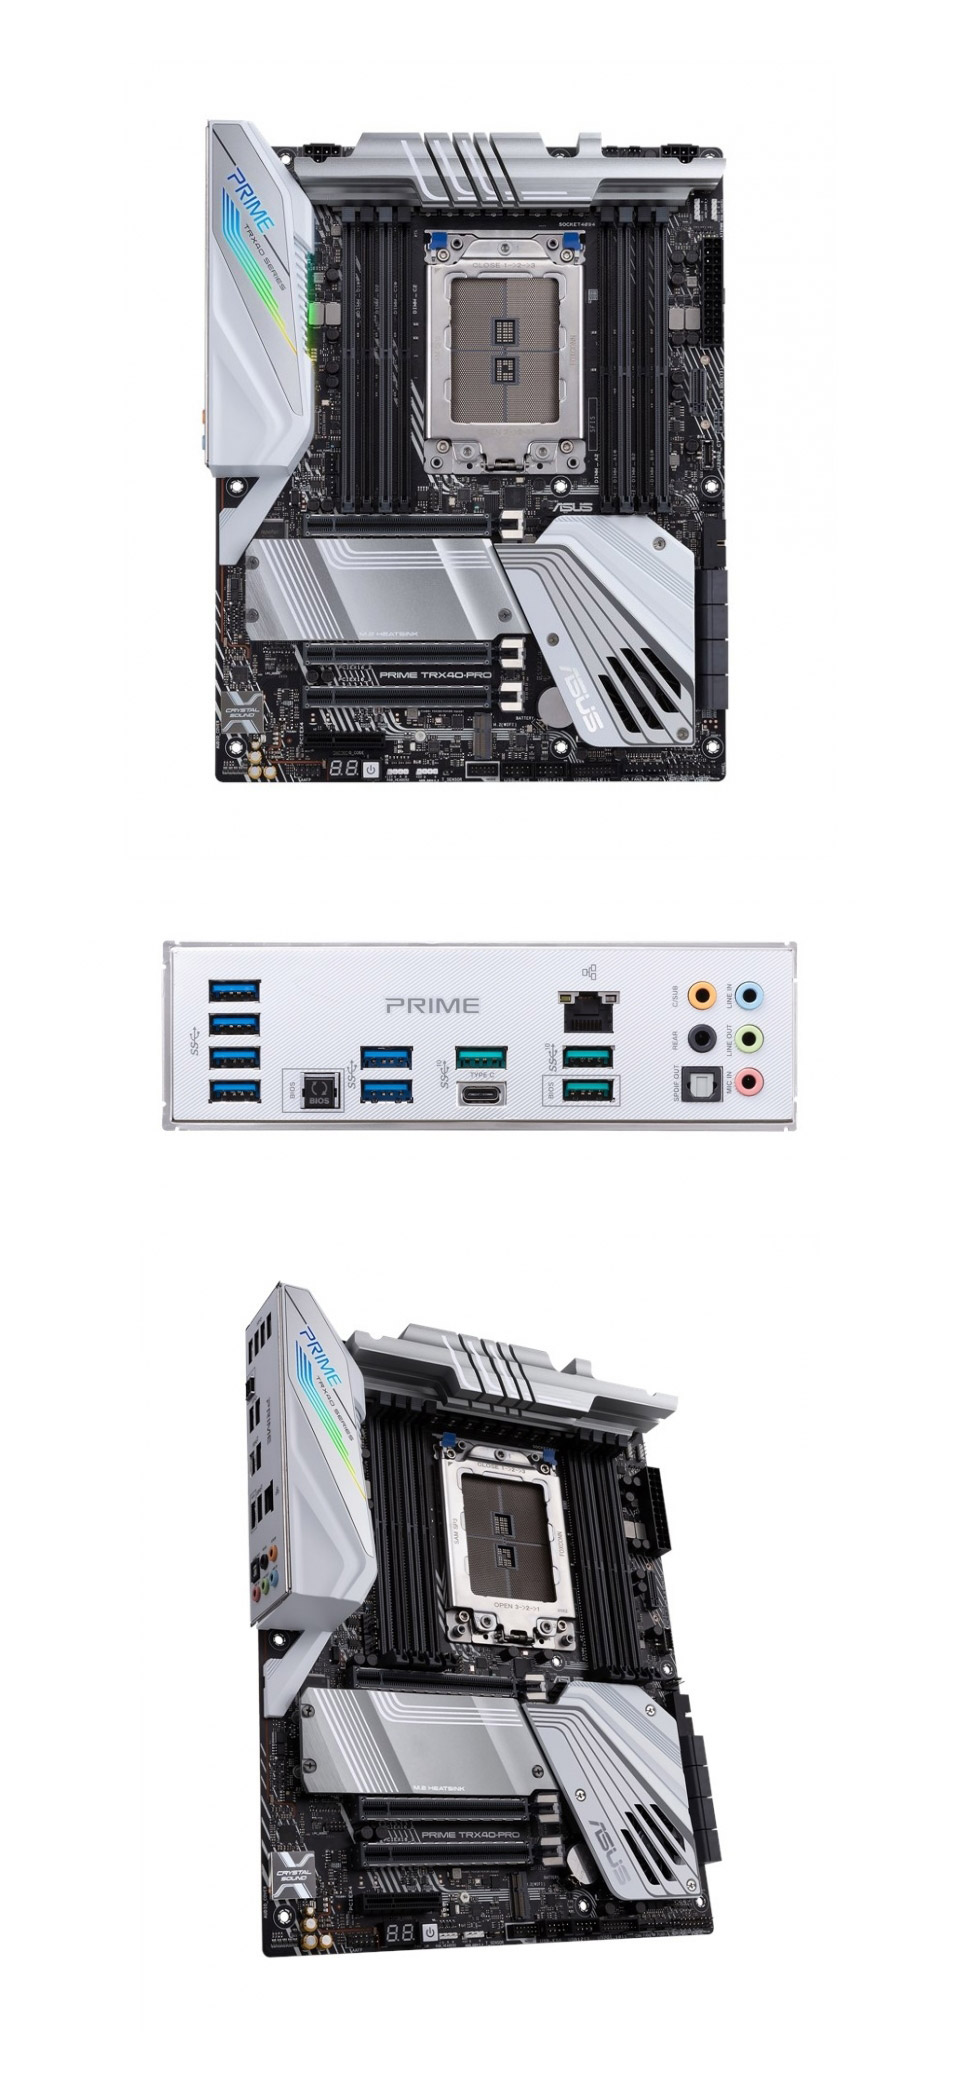 ASUS Prime TRX40 Pro Motherboard product